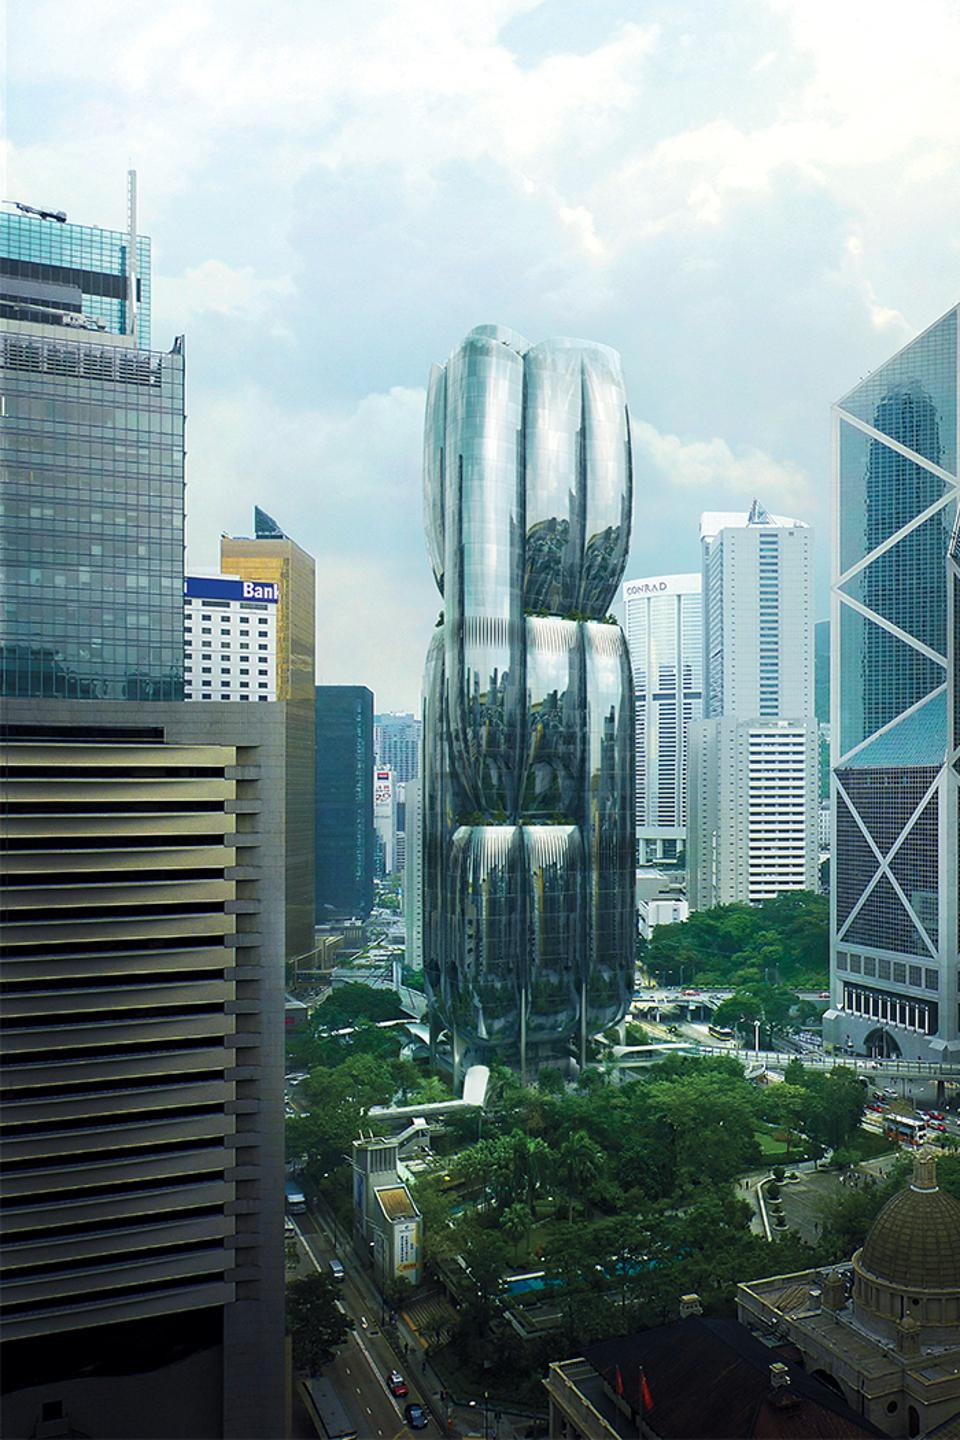 Murray Road project (artist rendering) in Hong Kong's Central district.